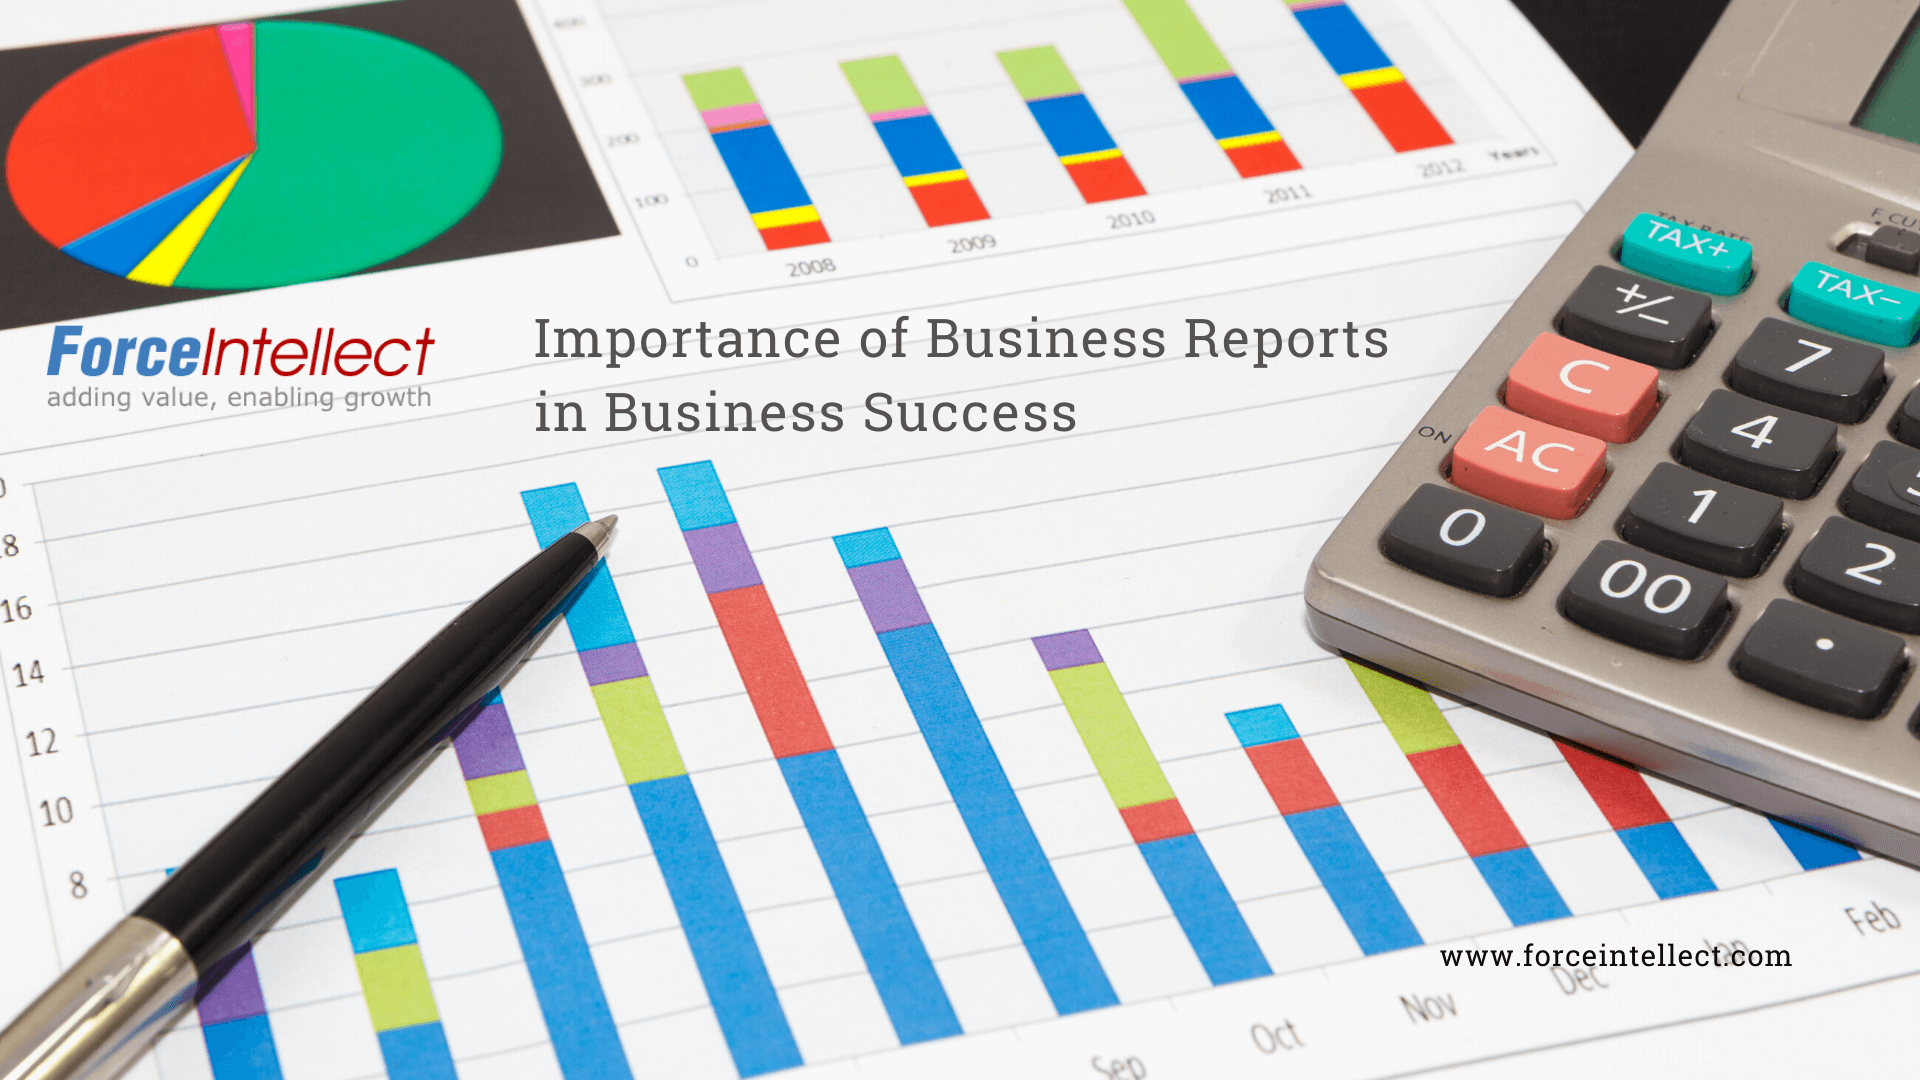 Importance of Business Reports for Business Success